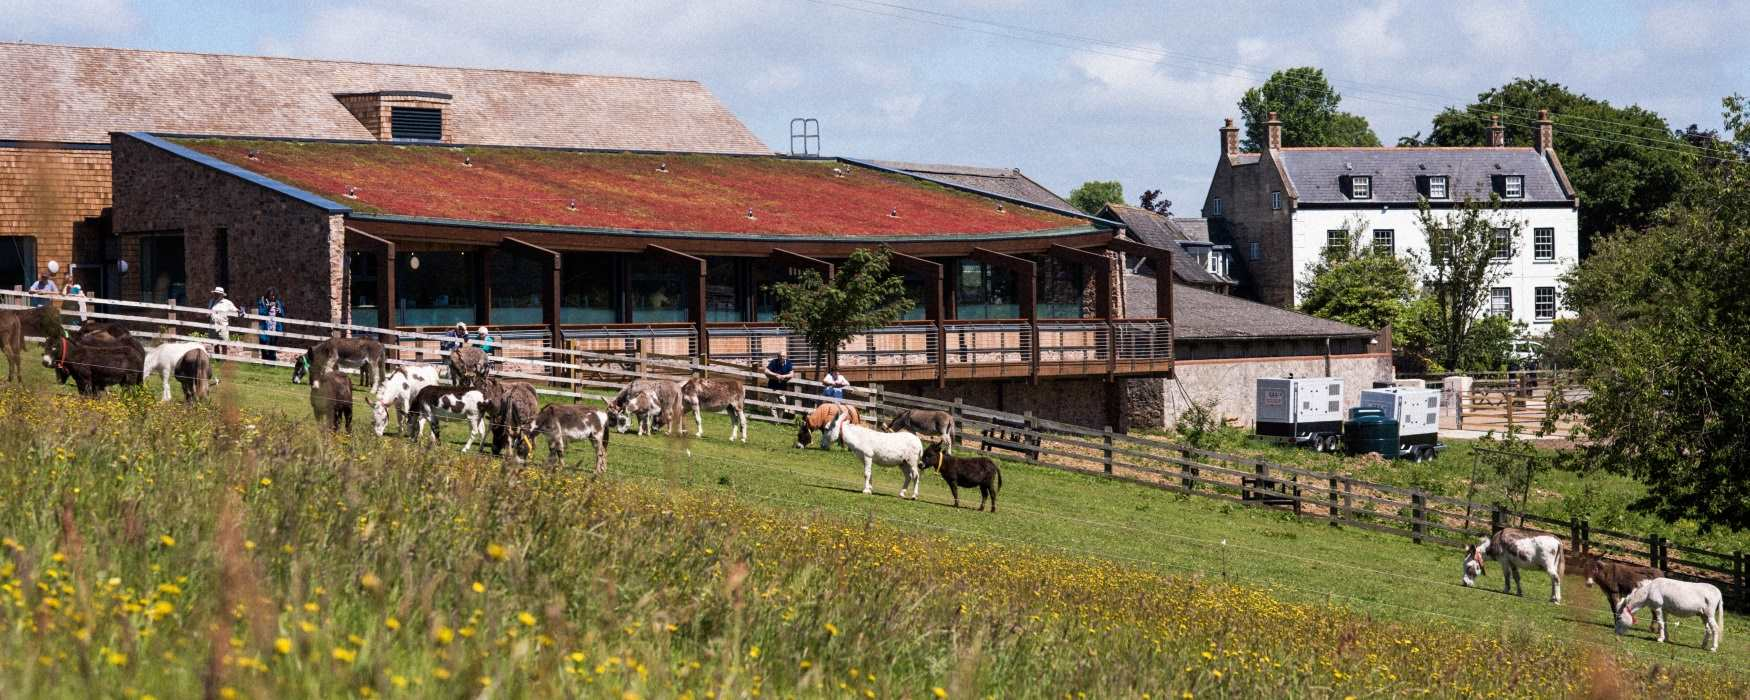 Family fun at the Donkey Sanctuary